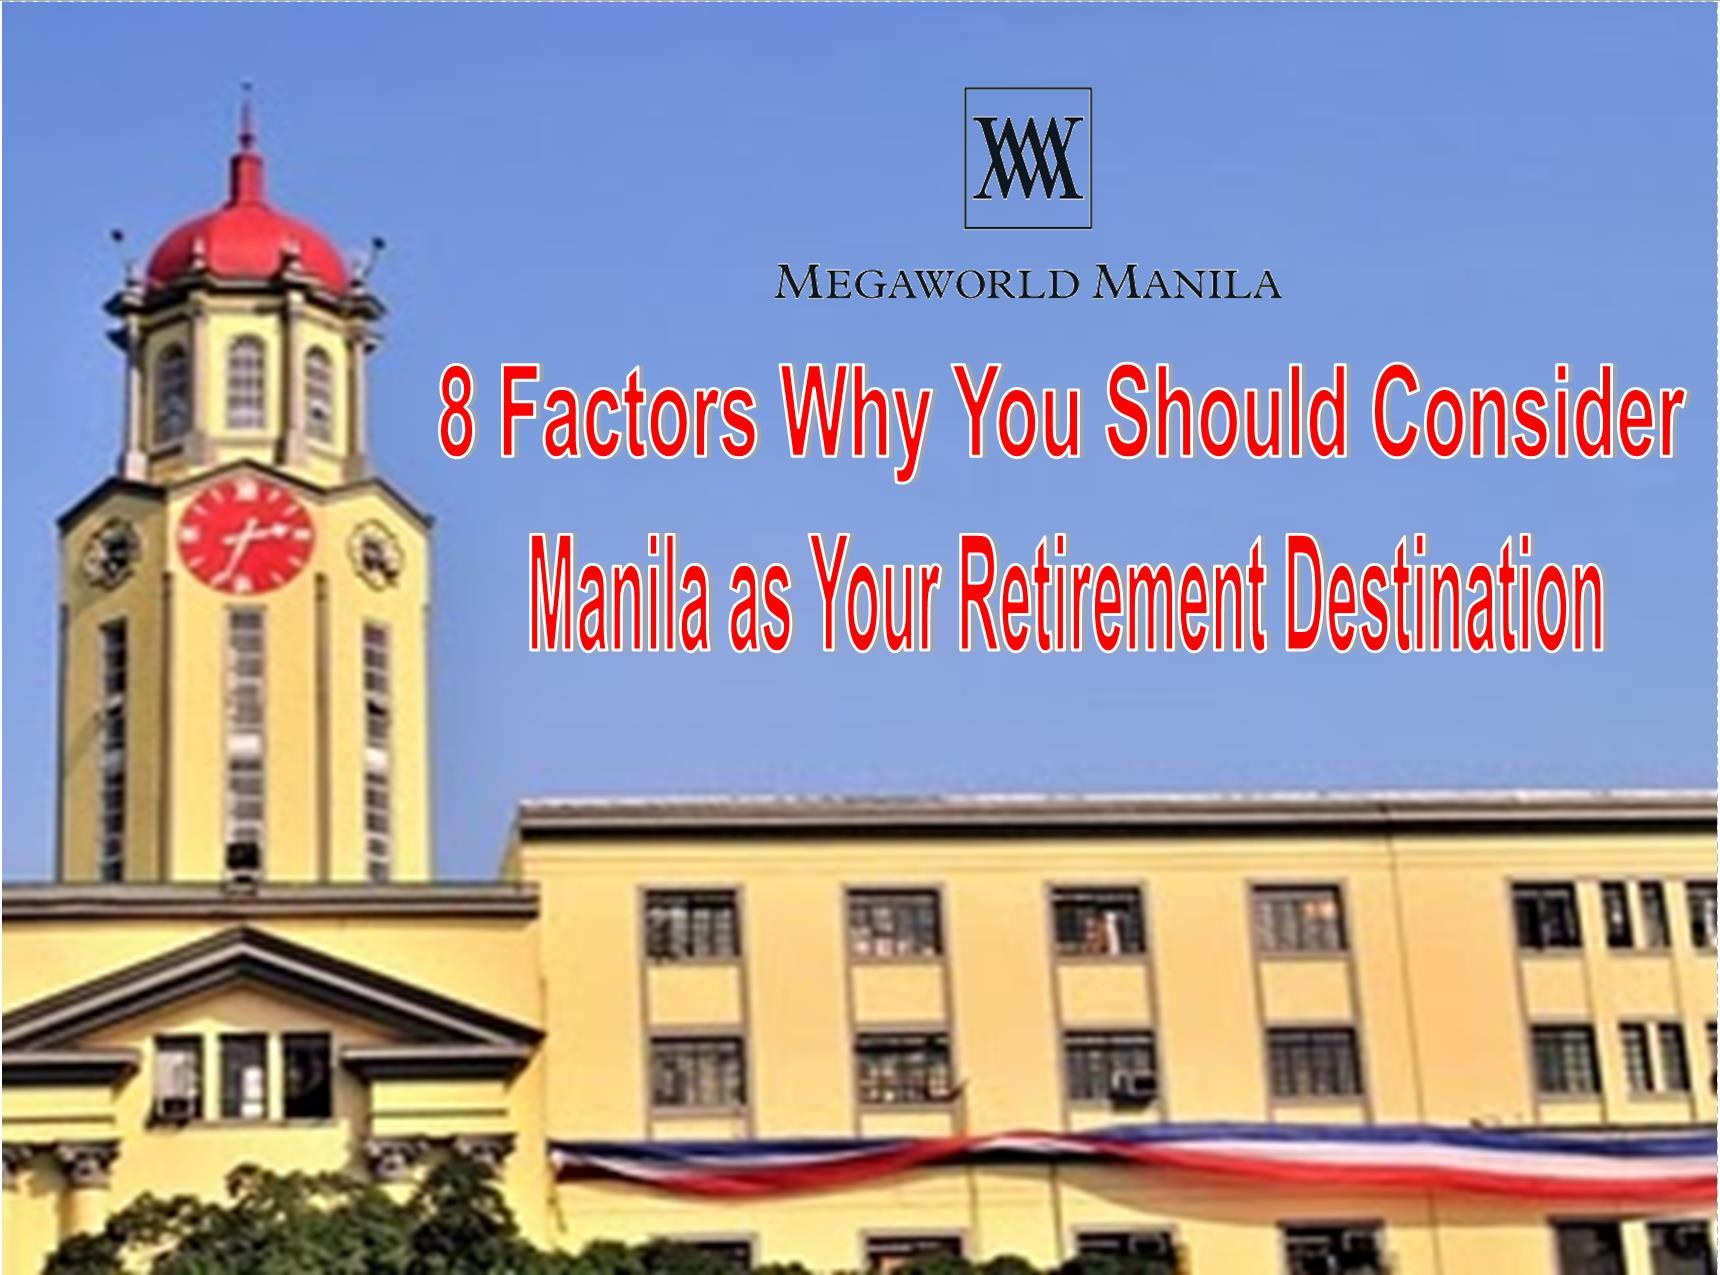 8 Factors Why You Should Consider Manila as Your Retirement Destination